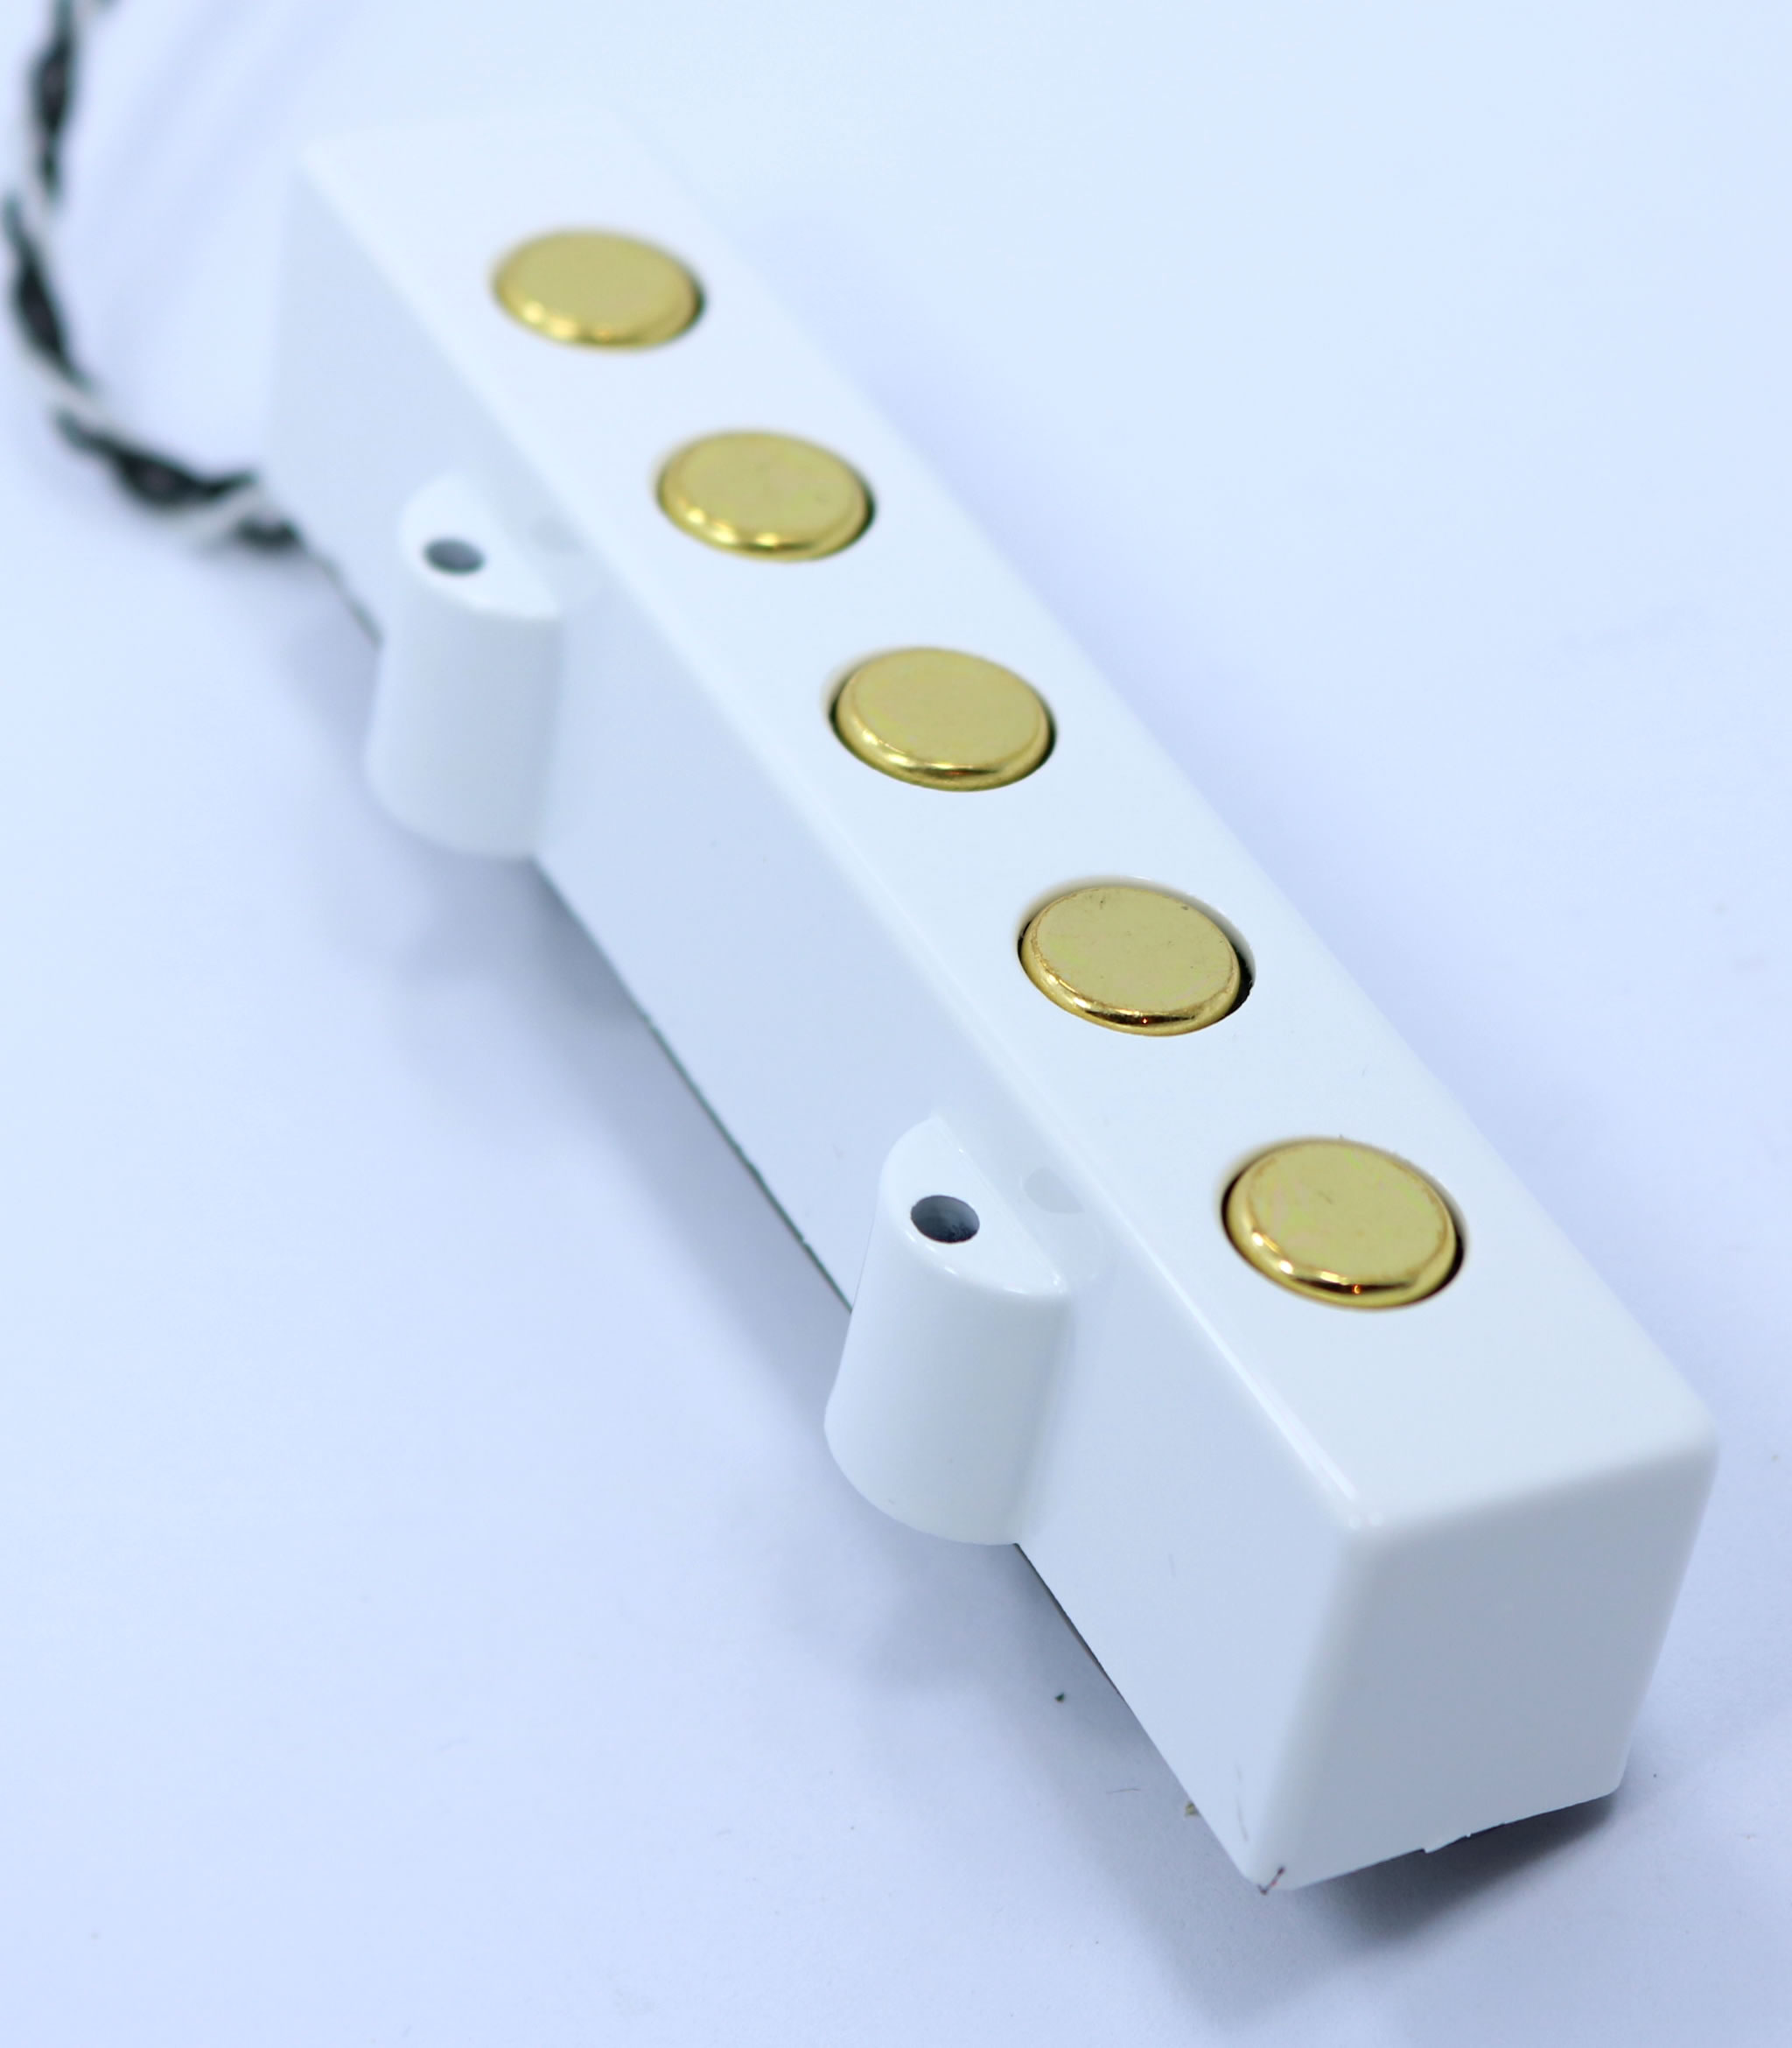 New from our custom shop Artic White BIG PHATTY  5 String Pickups- Ceramic Magnet-  Availavle in Chrome Or Gold- THIS IS FOR A SET